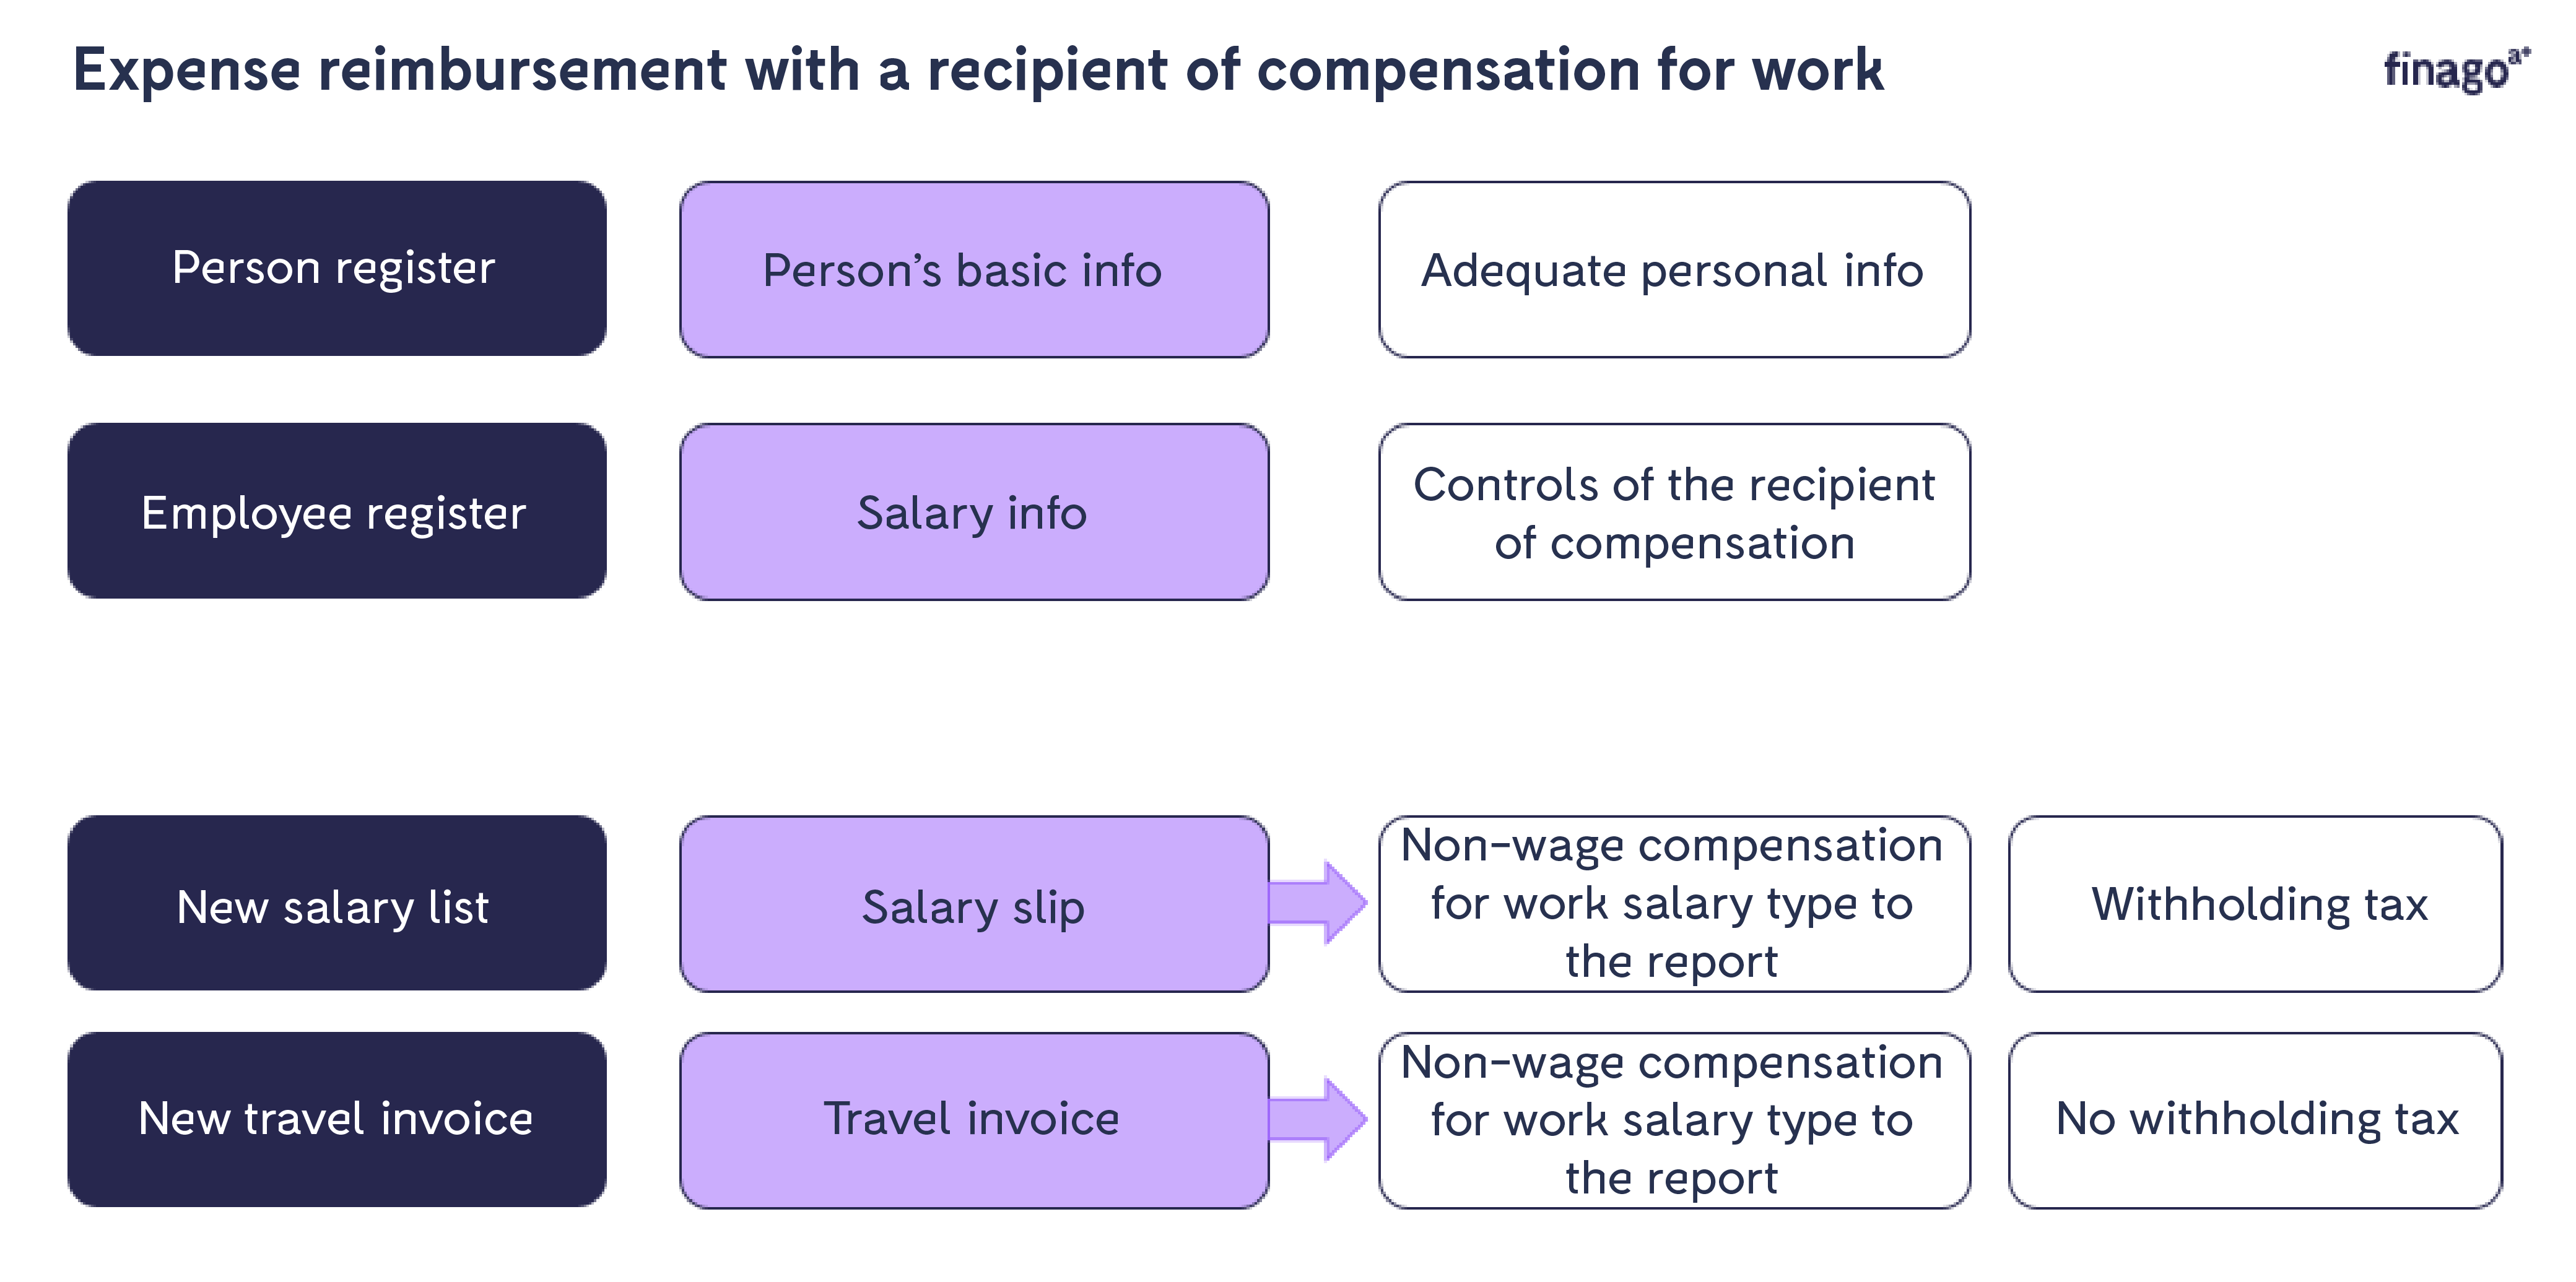 Expense_reimbursement_with_a_recipient_of_compensation_for_work_1.png